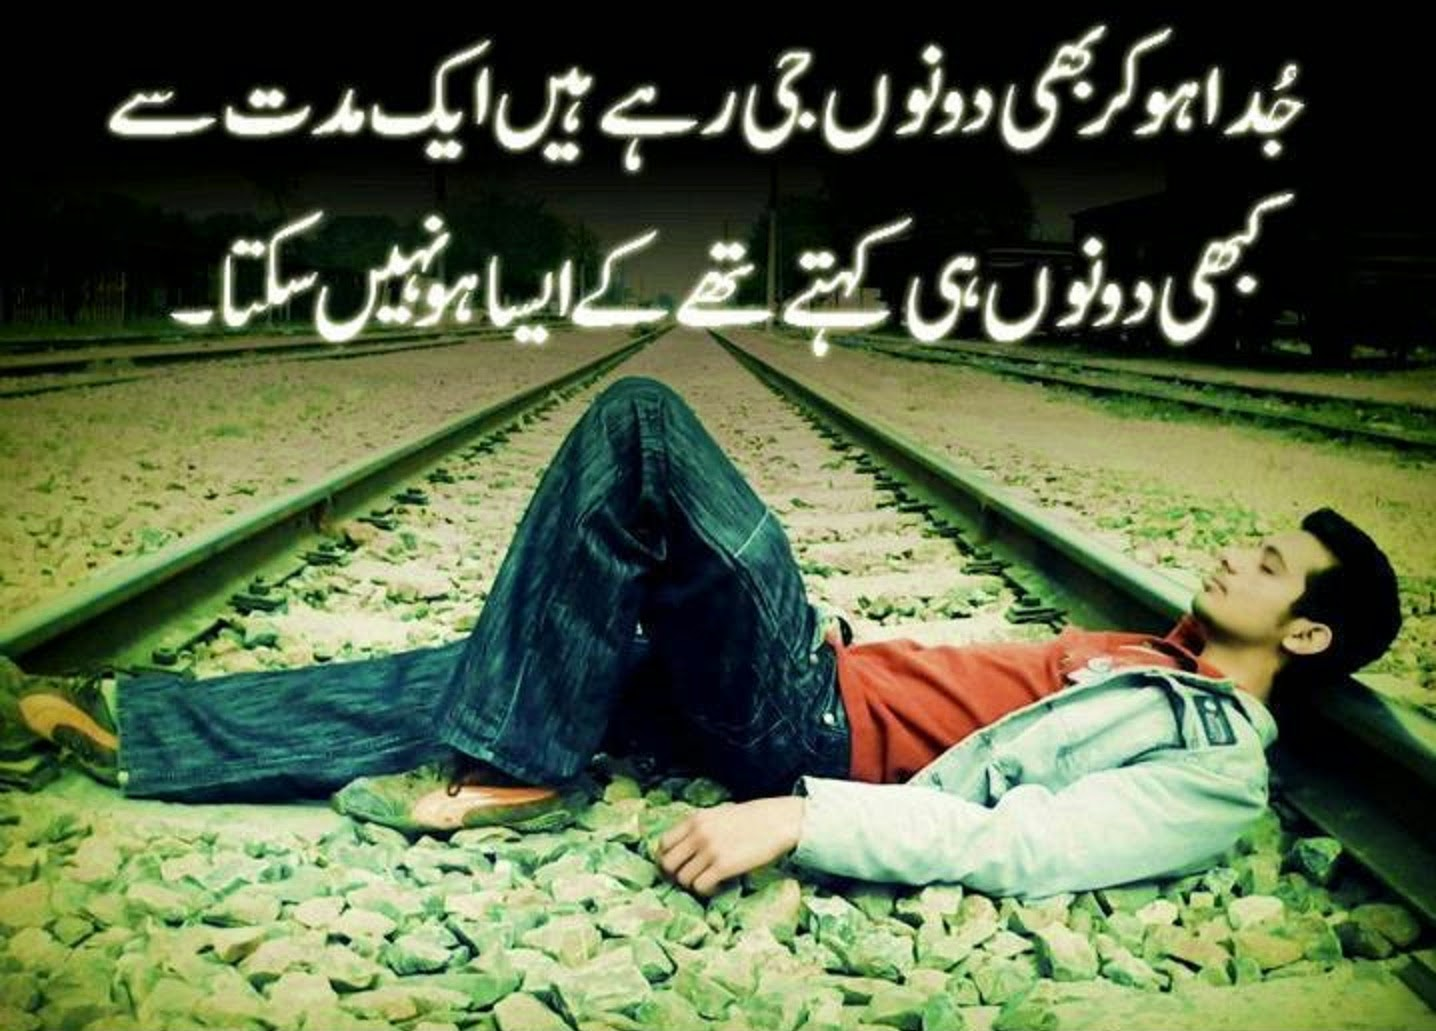 Download HD Wallpapers 3D Beautiful Sad Urdu Poetry HD Wallpapers 1436x1031